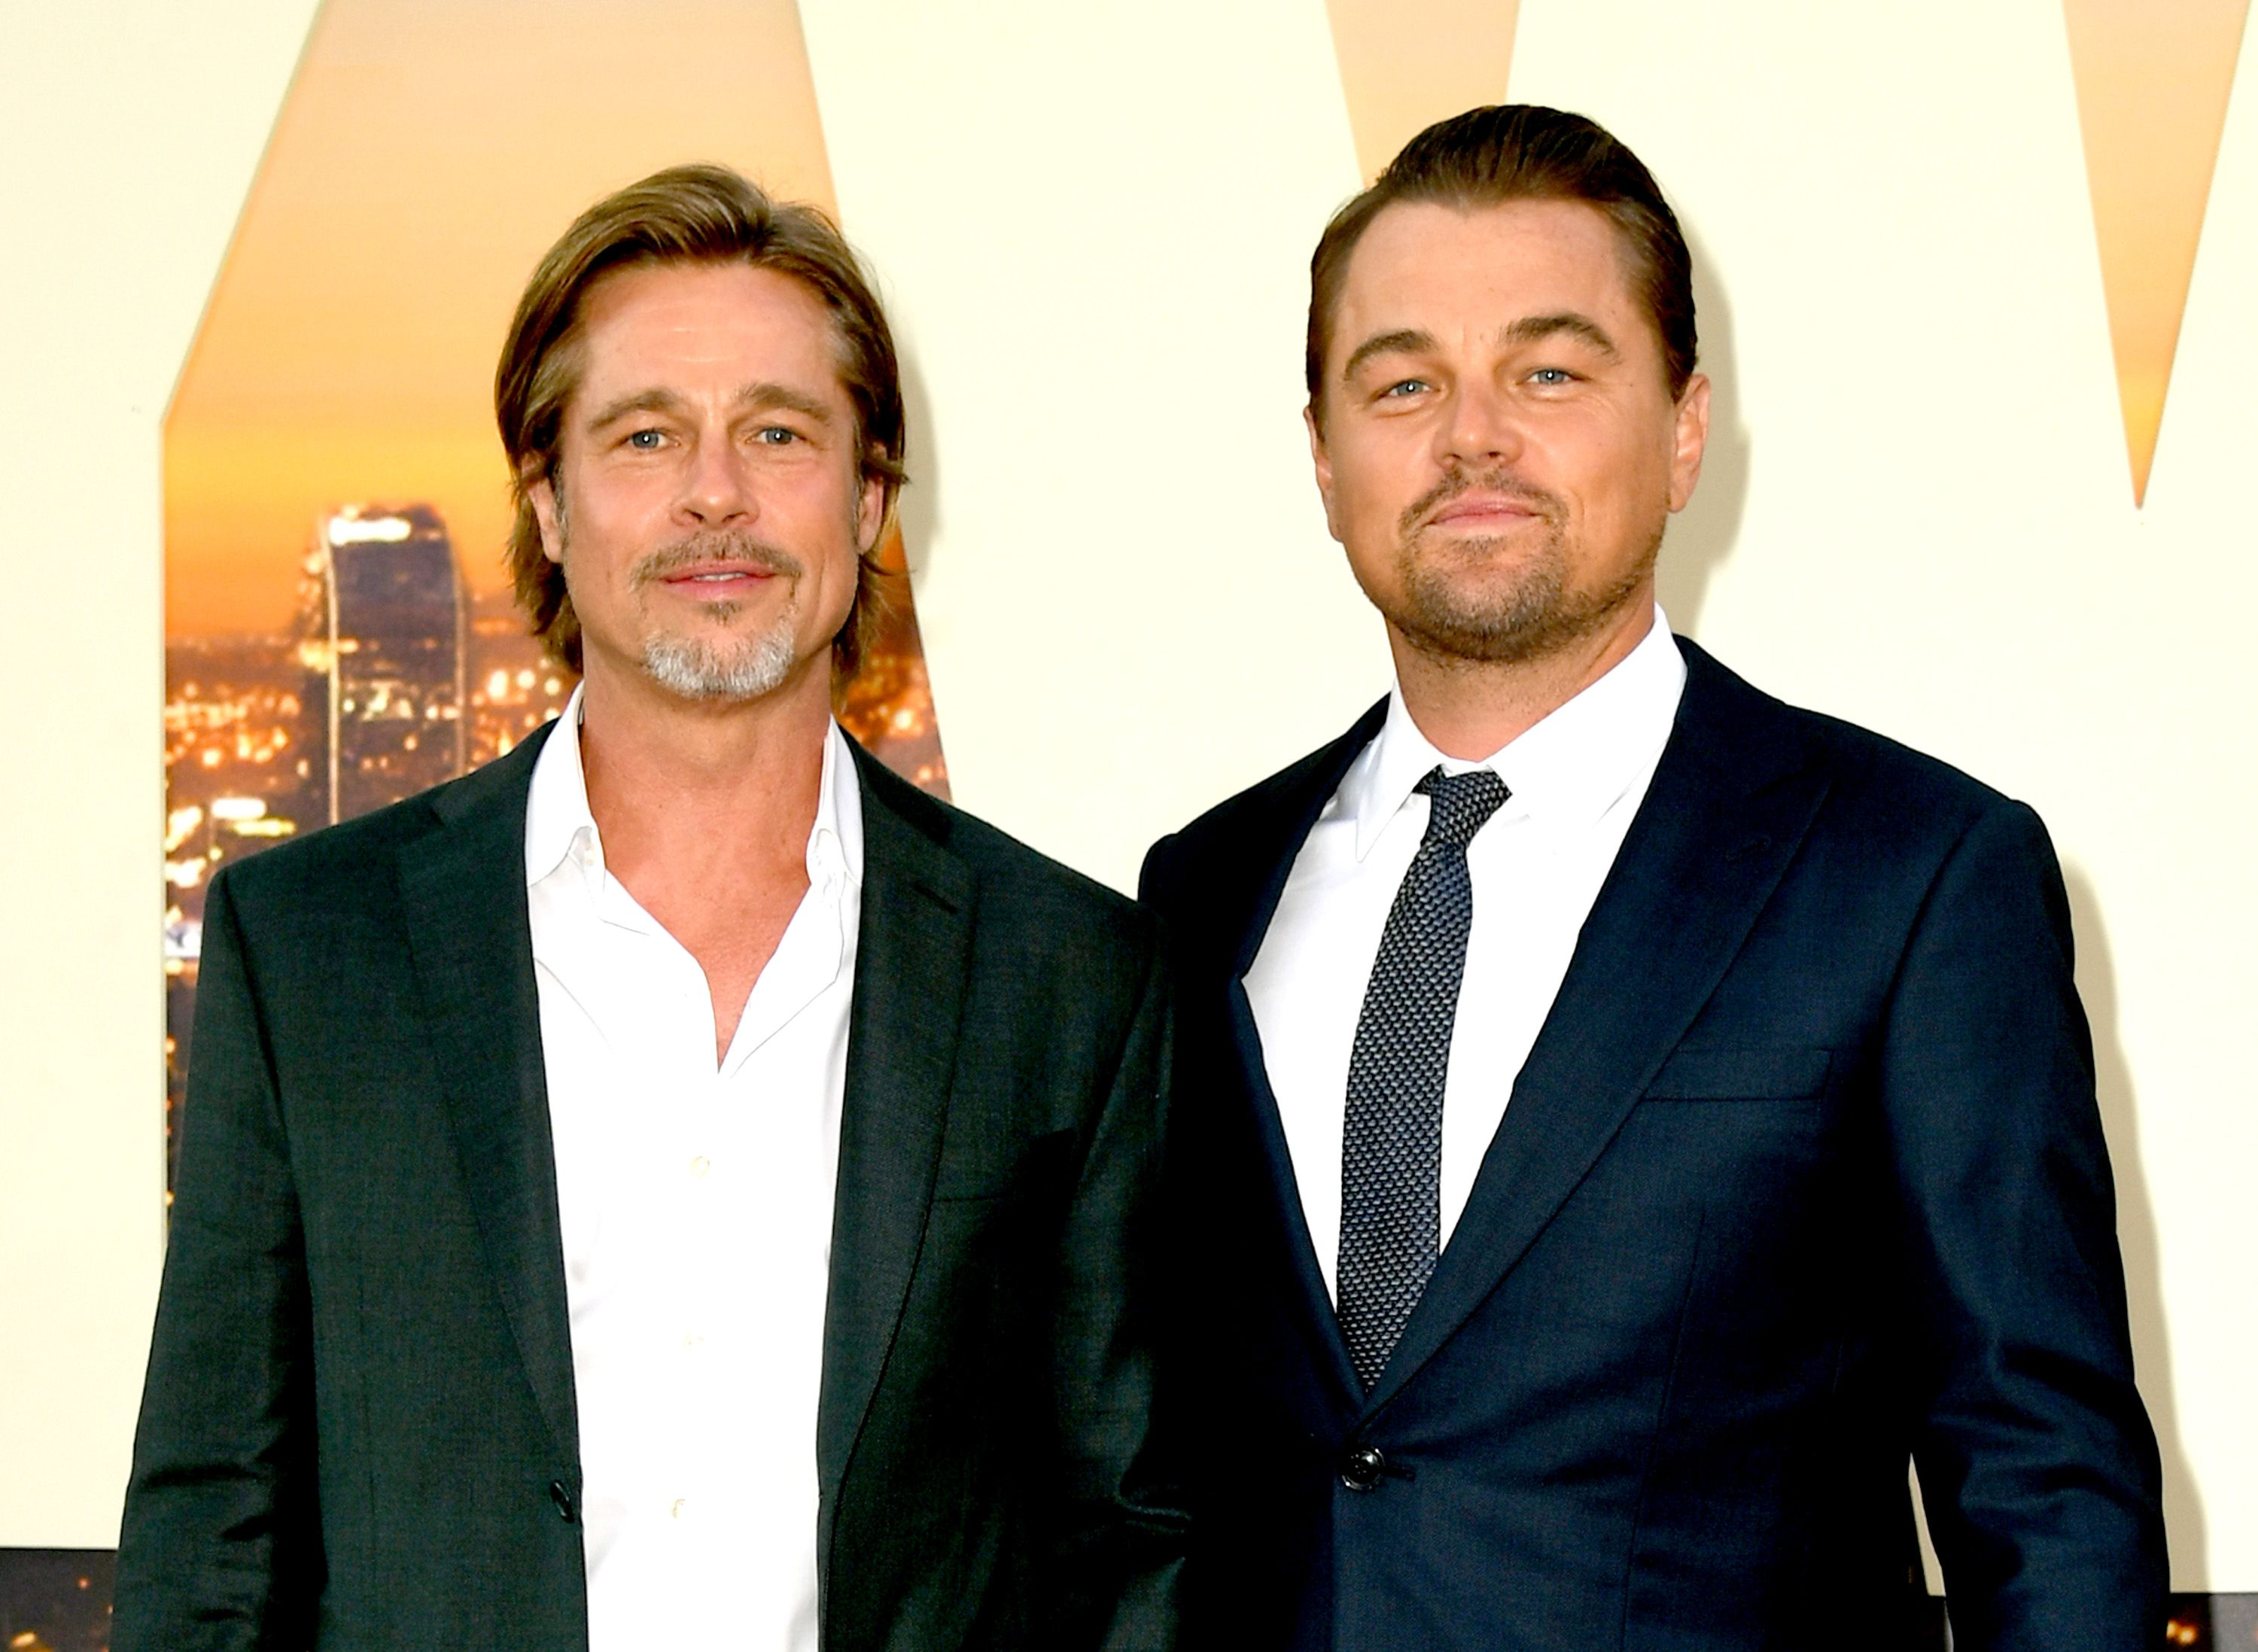 Brad Pitt and Leonardo DiCaprio Are Reportedly Bonding Through Their Love of Sculpture